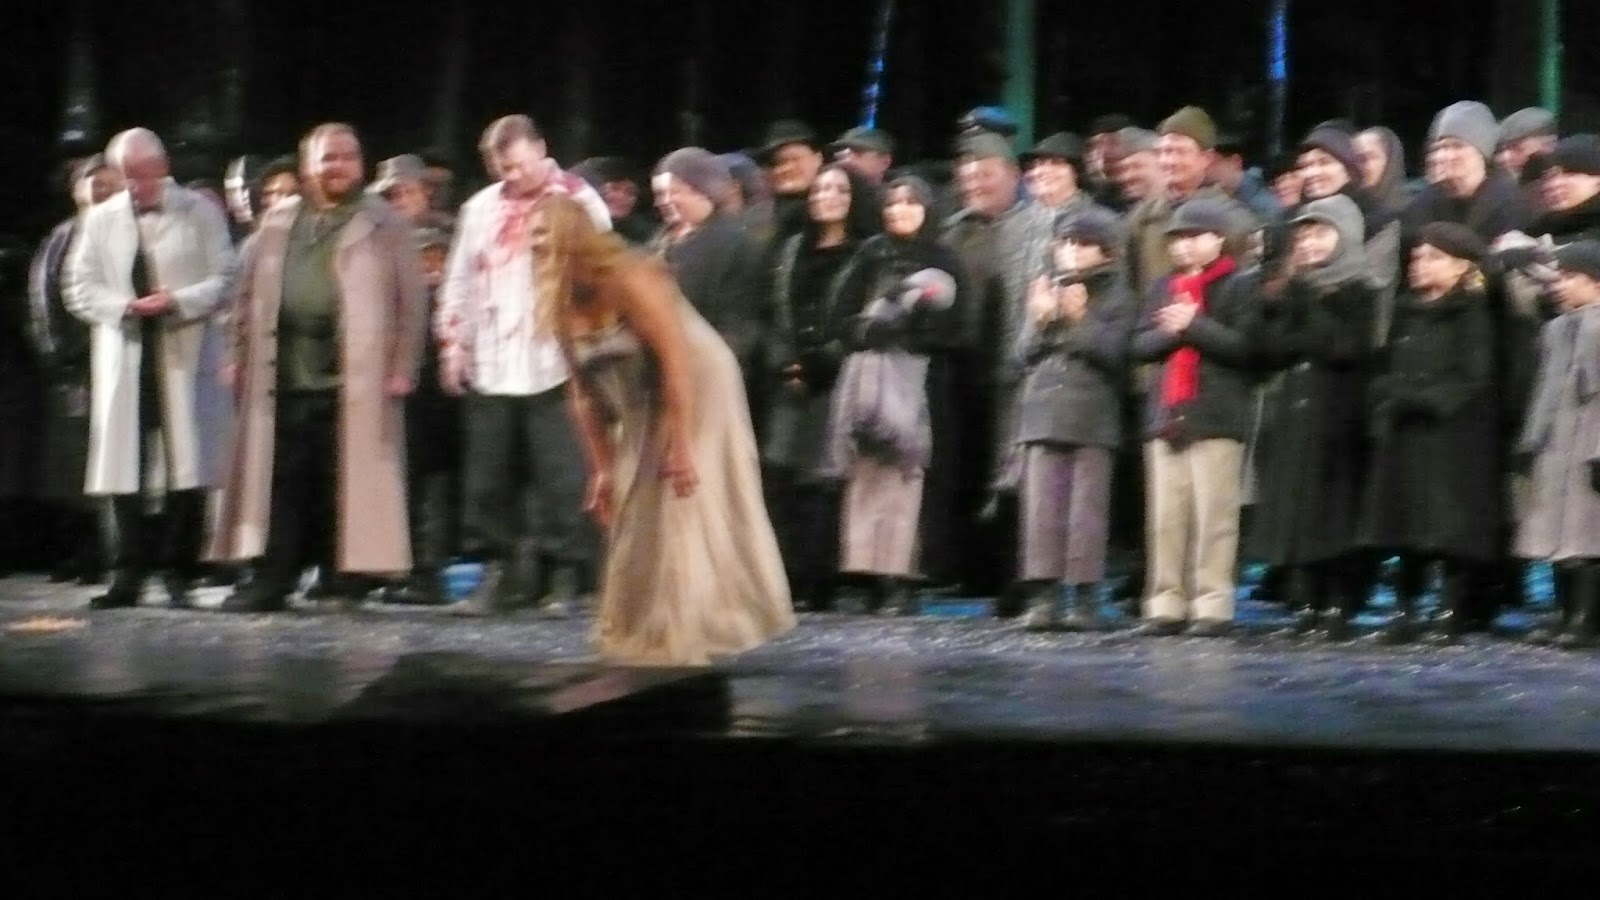 Macbeth, Final Dress Rehearsal, Met, NYC, 20 Sep 2014